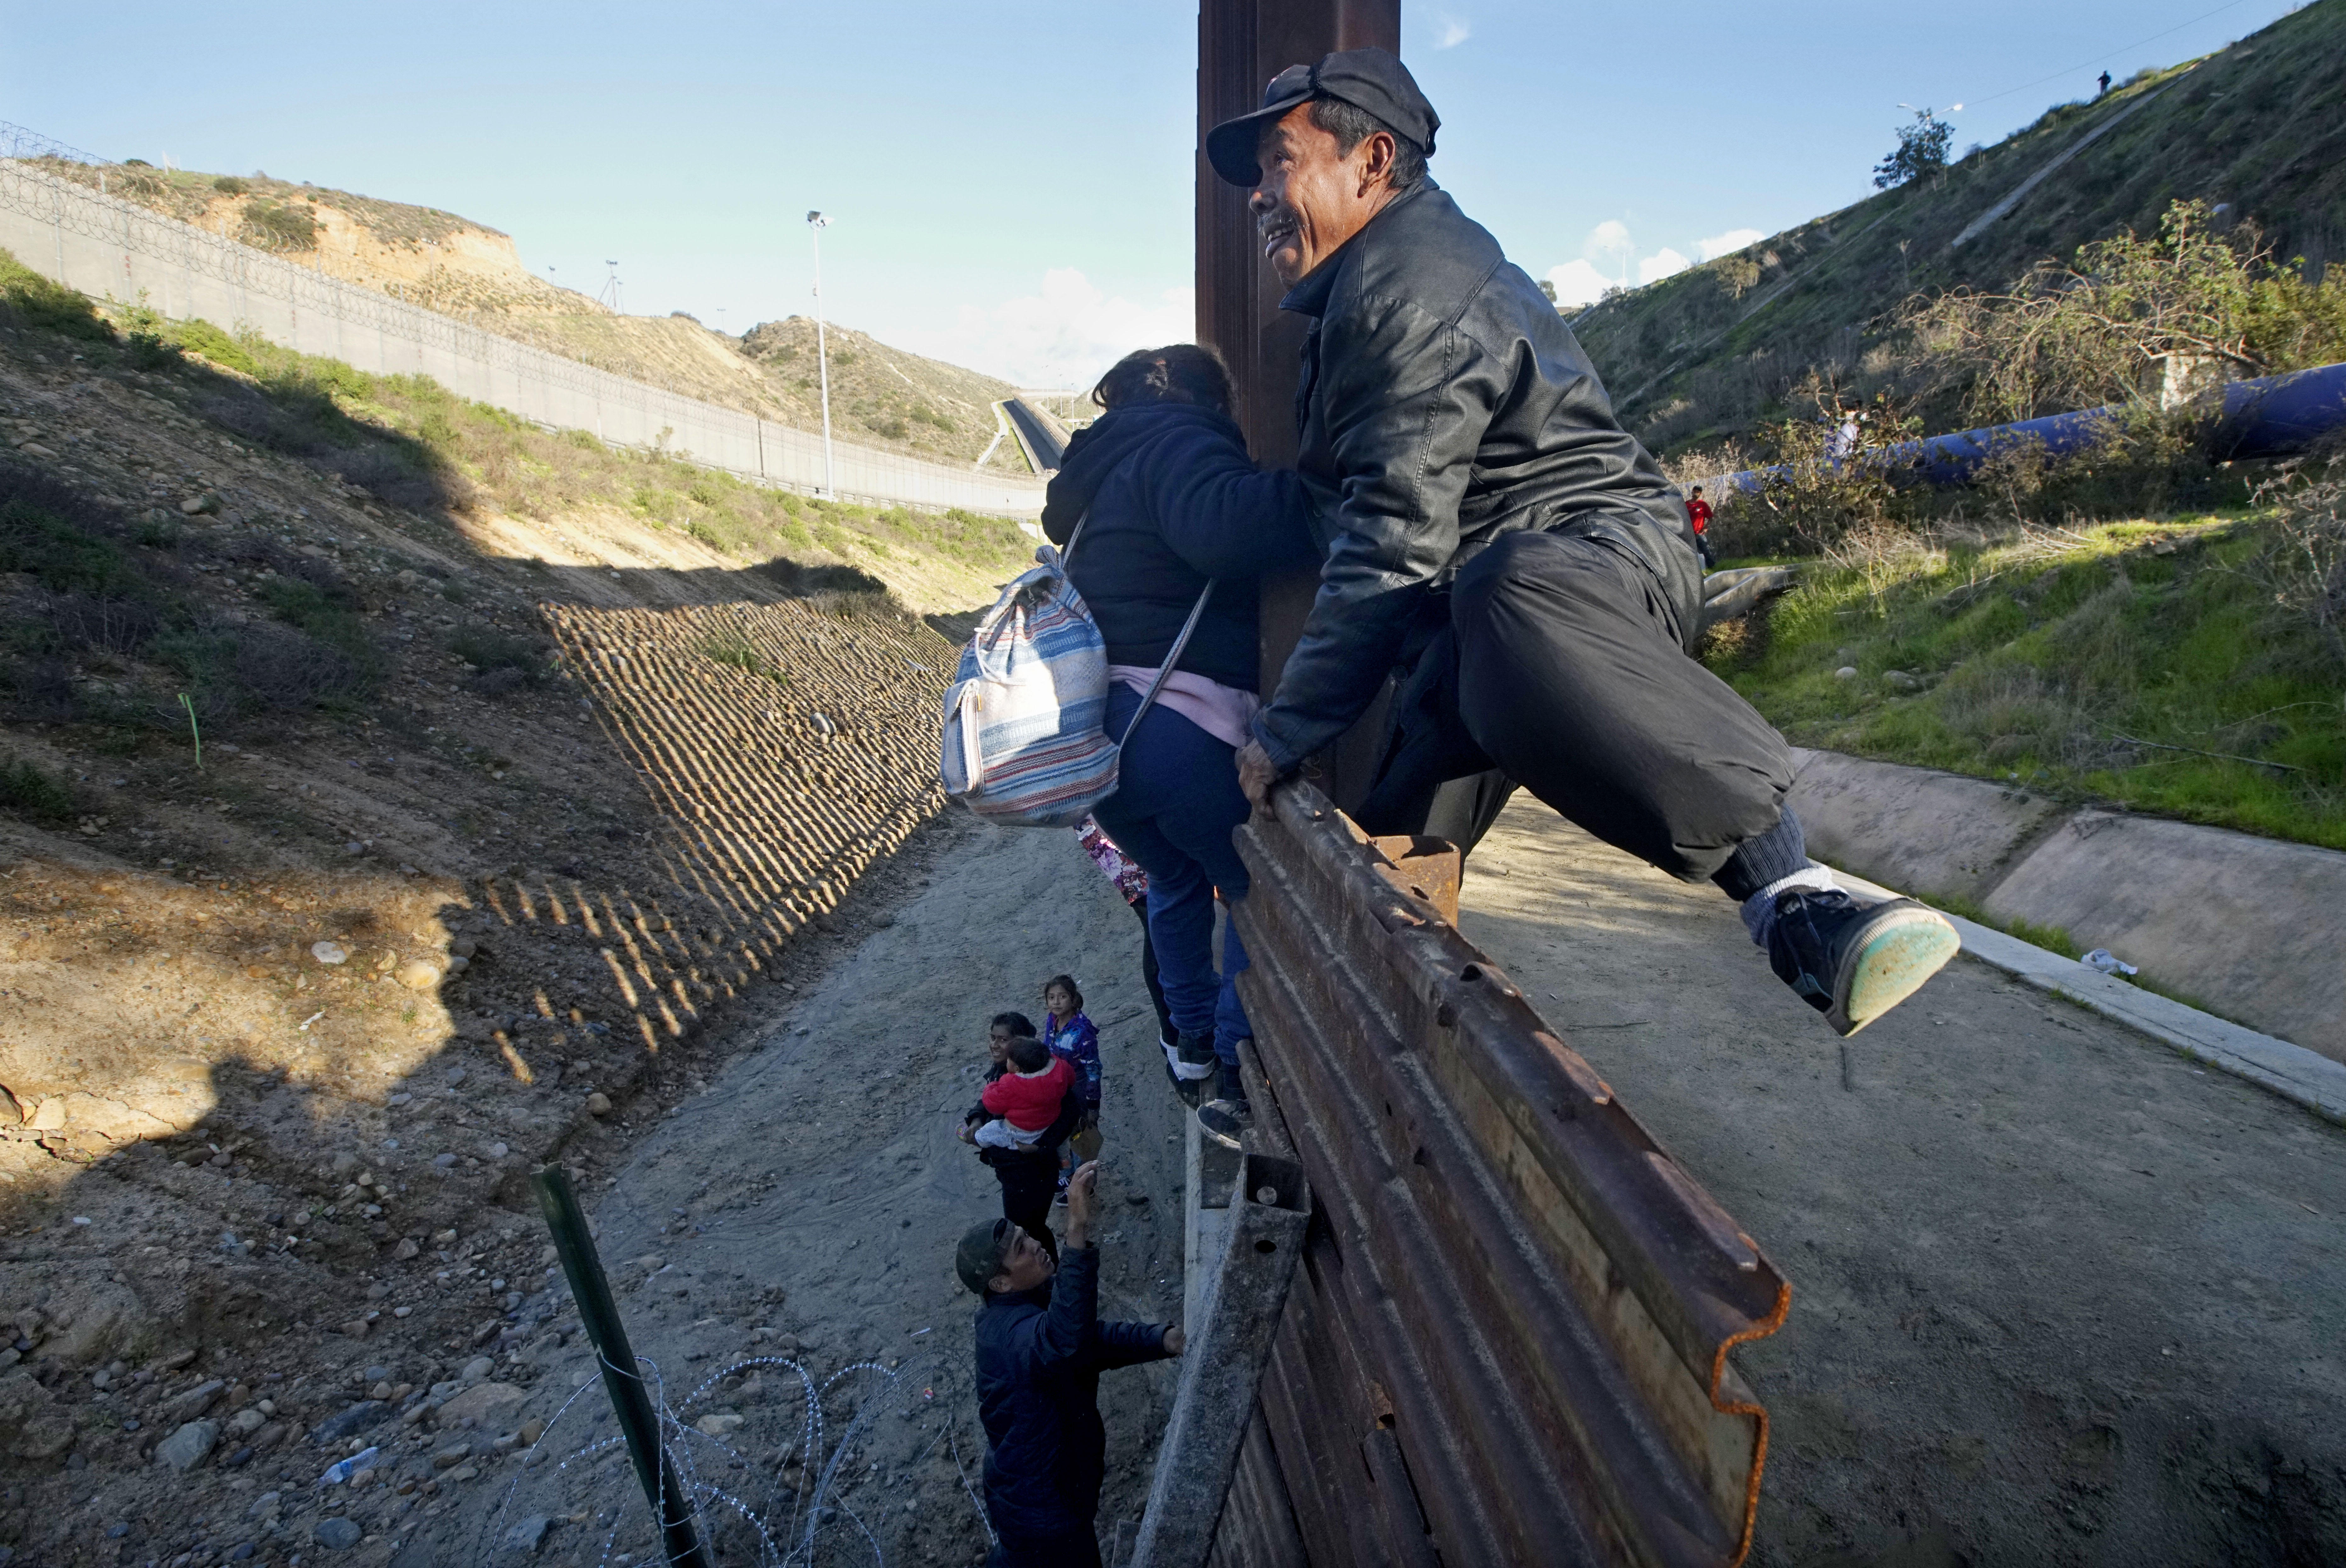 Honduran migrants climb over a border fence in Tijuana, Mexico on January 6, 2019. (Sandy Huffaker/Getty Images)